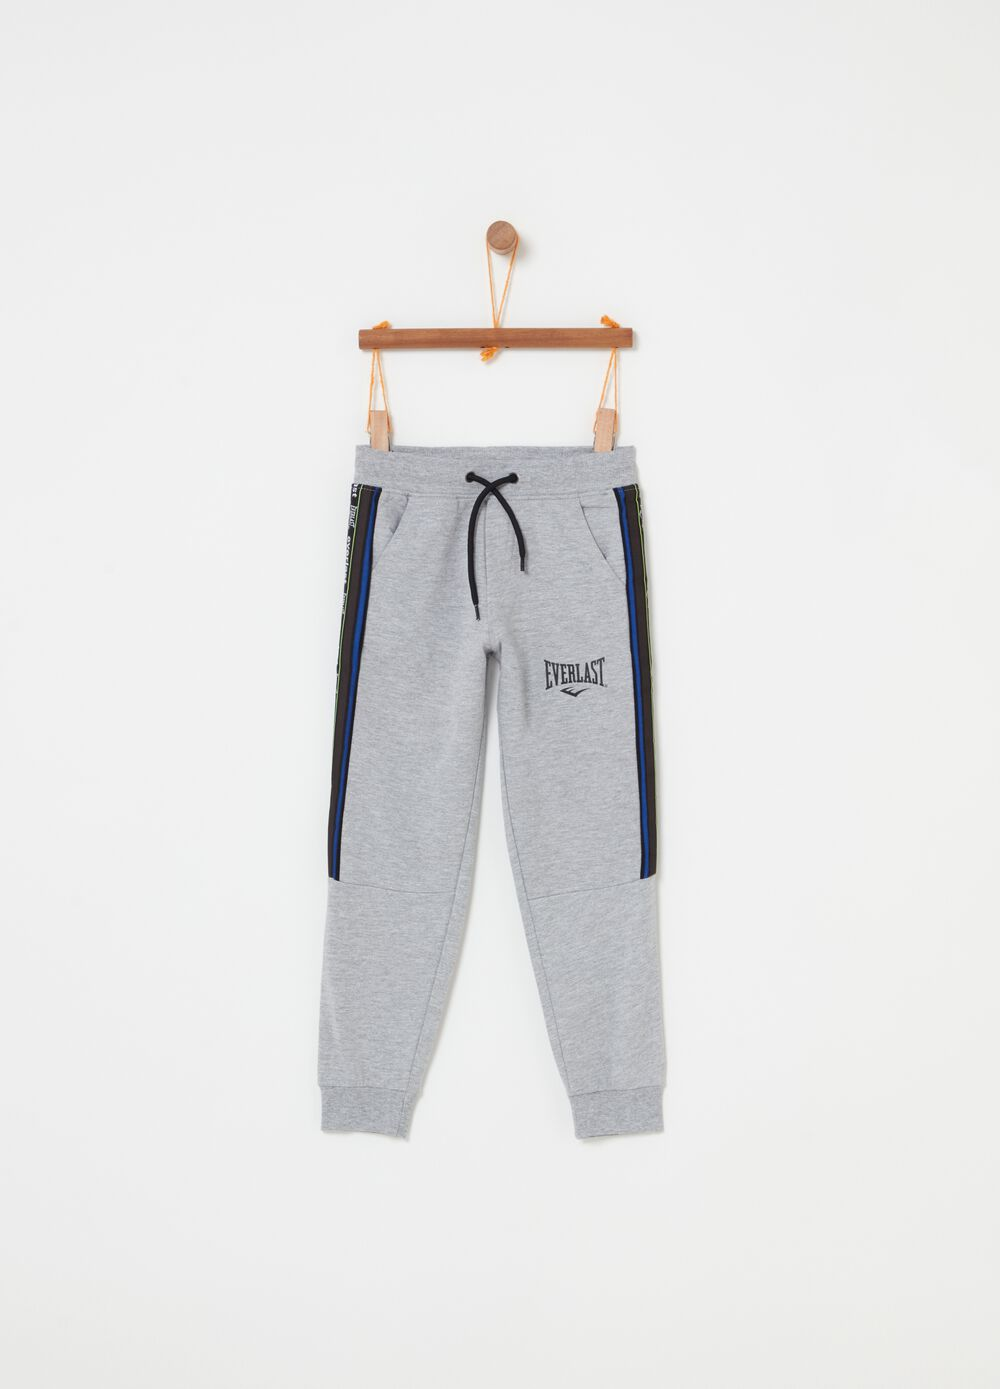 Mélange trousers with Everlast print